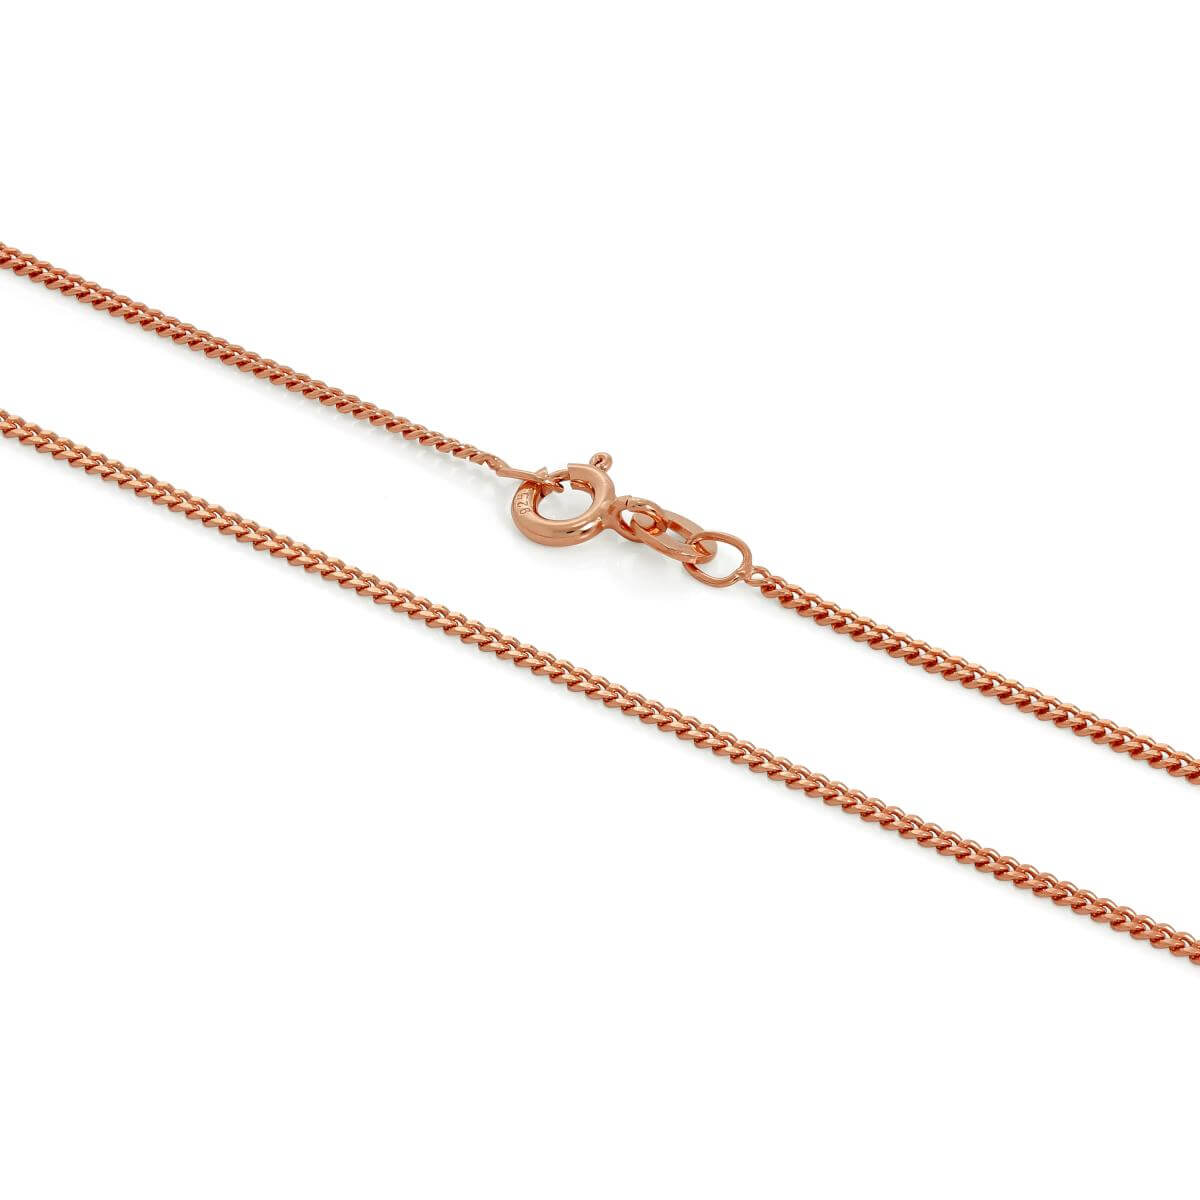 Rose Gold Dipped Sterling Silver 1mm Curb Chain 16 - 24 Inches